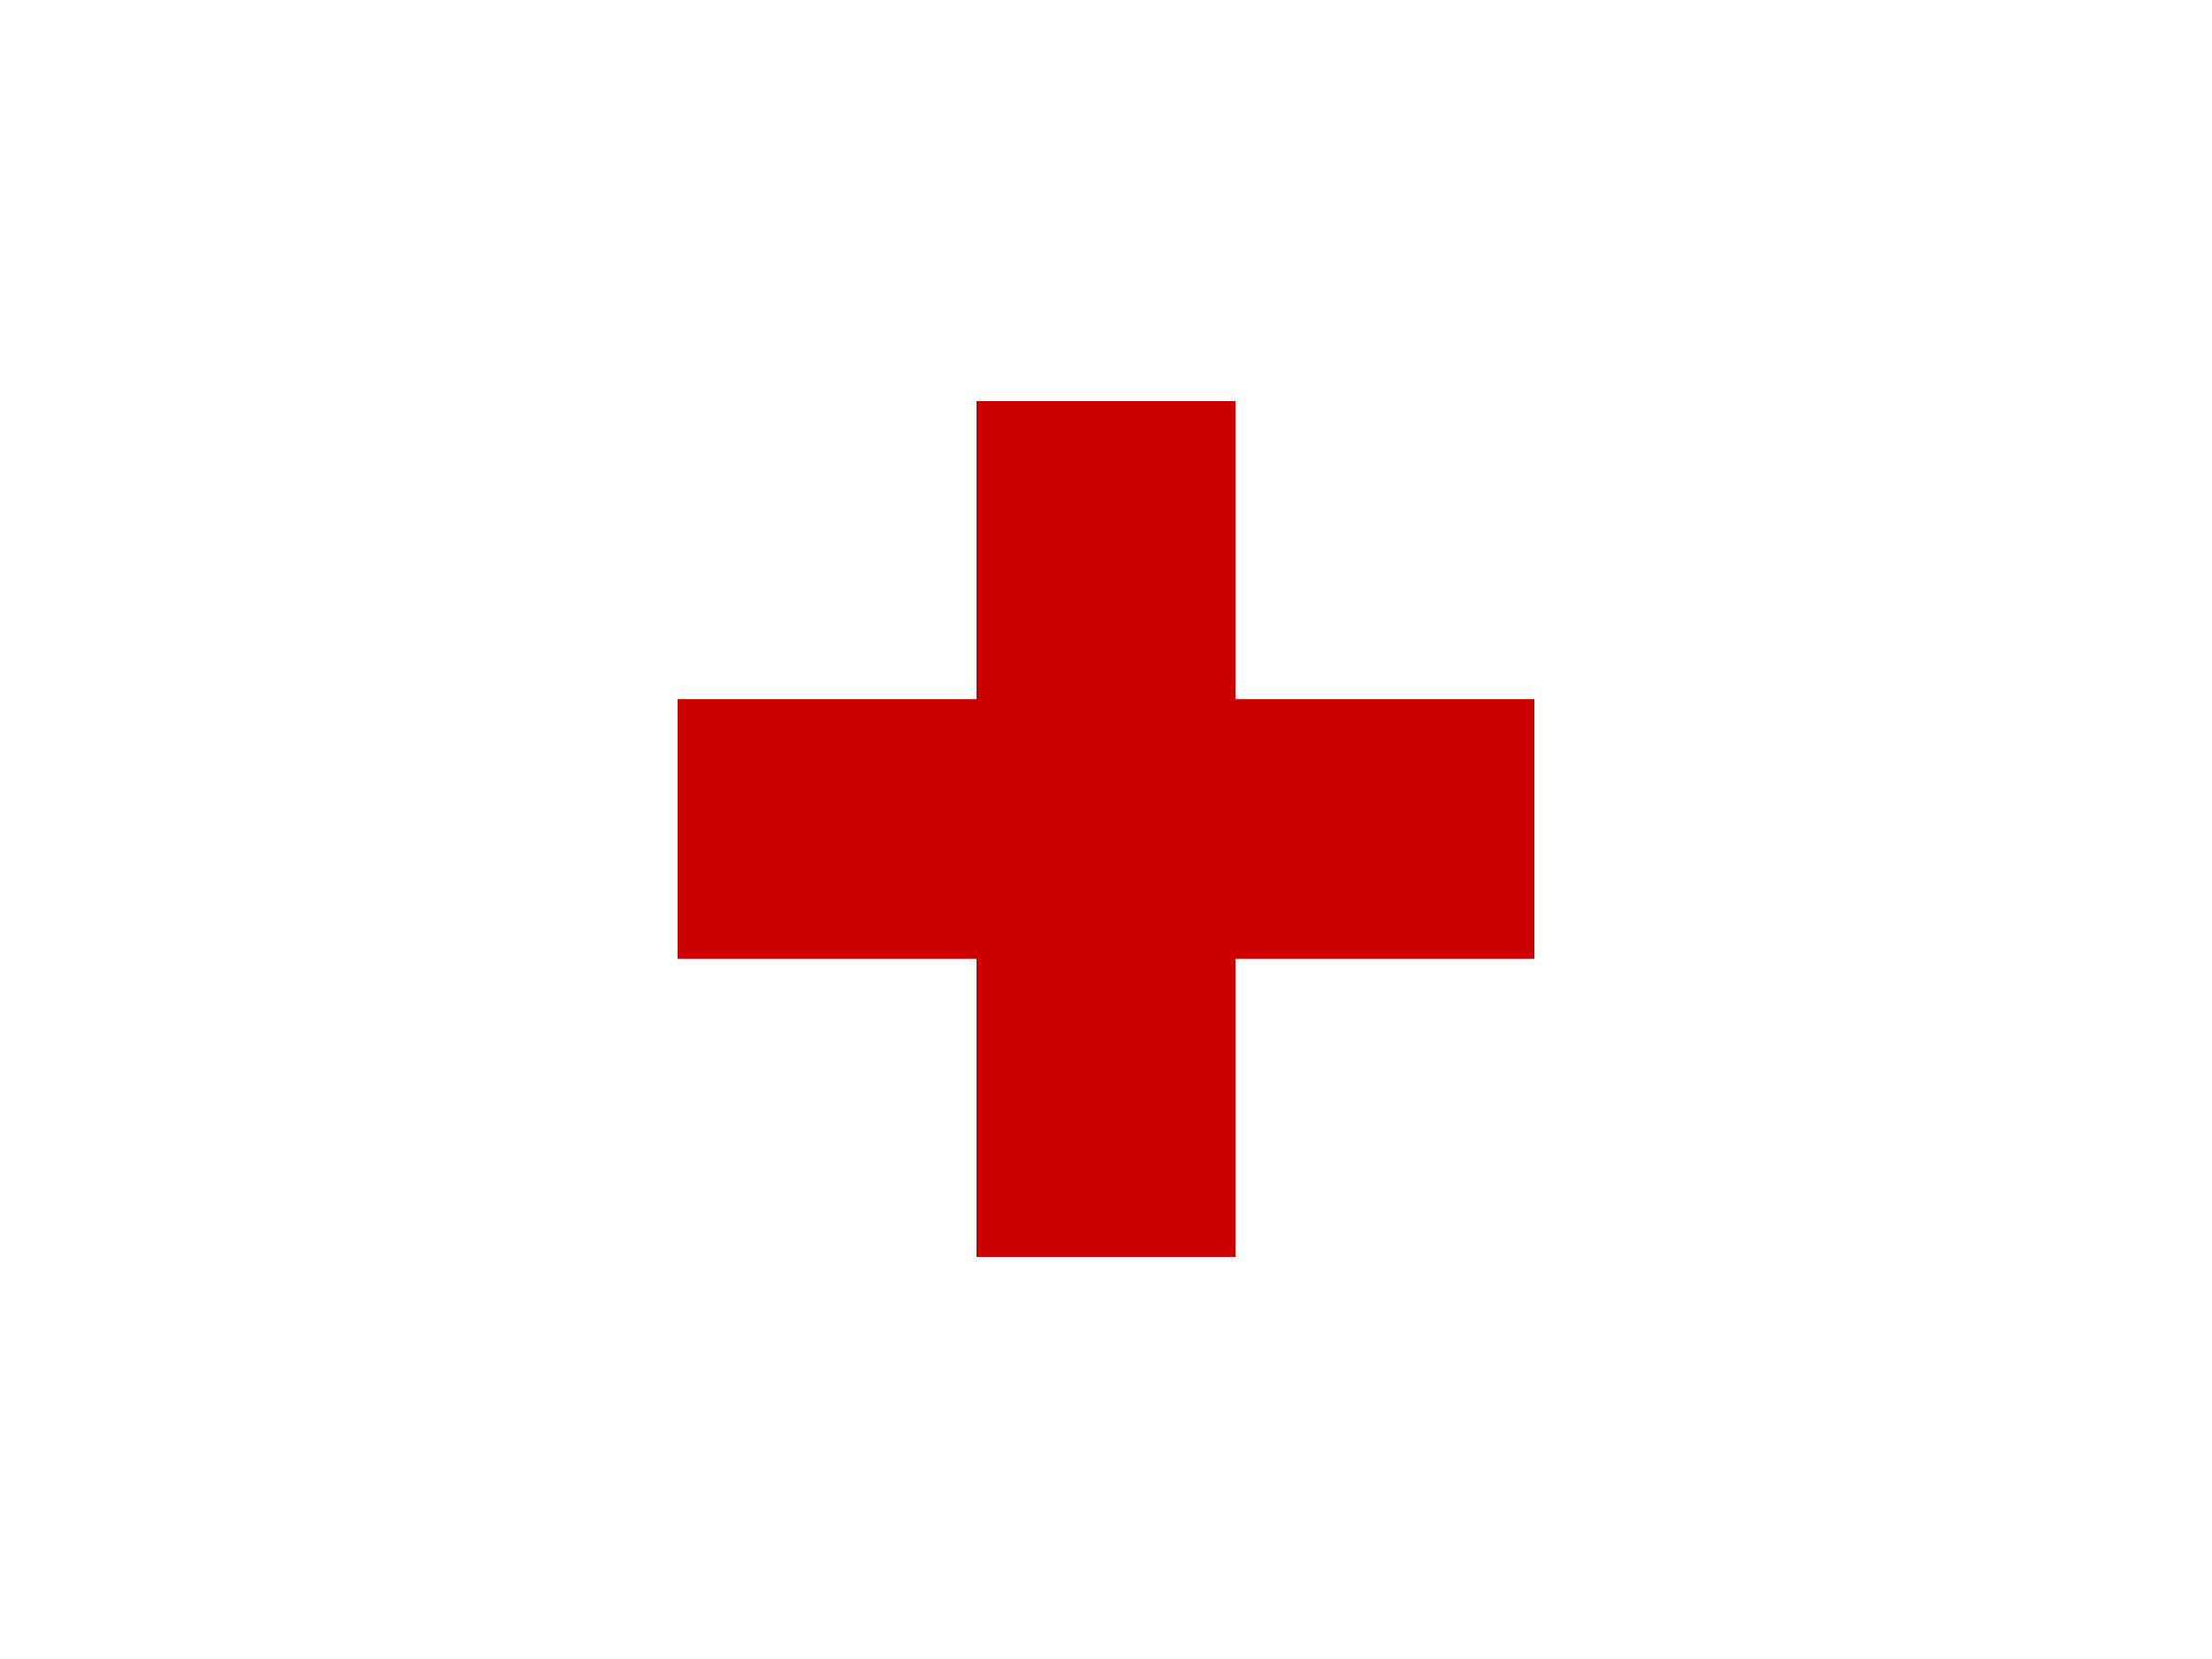 Red And White Cross Logos